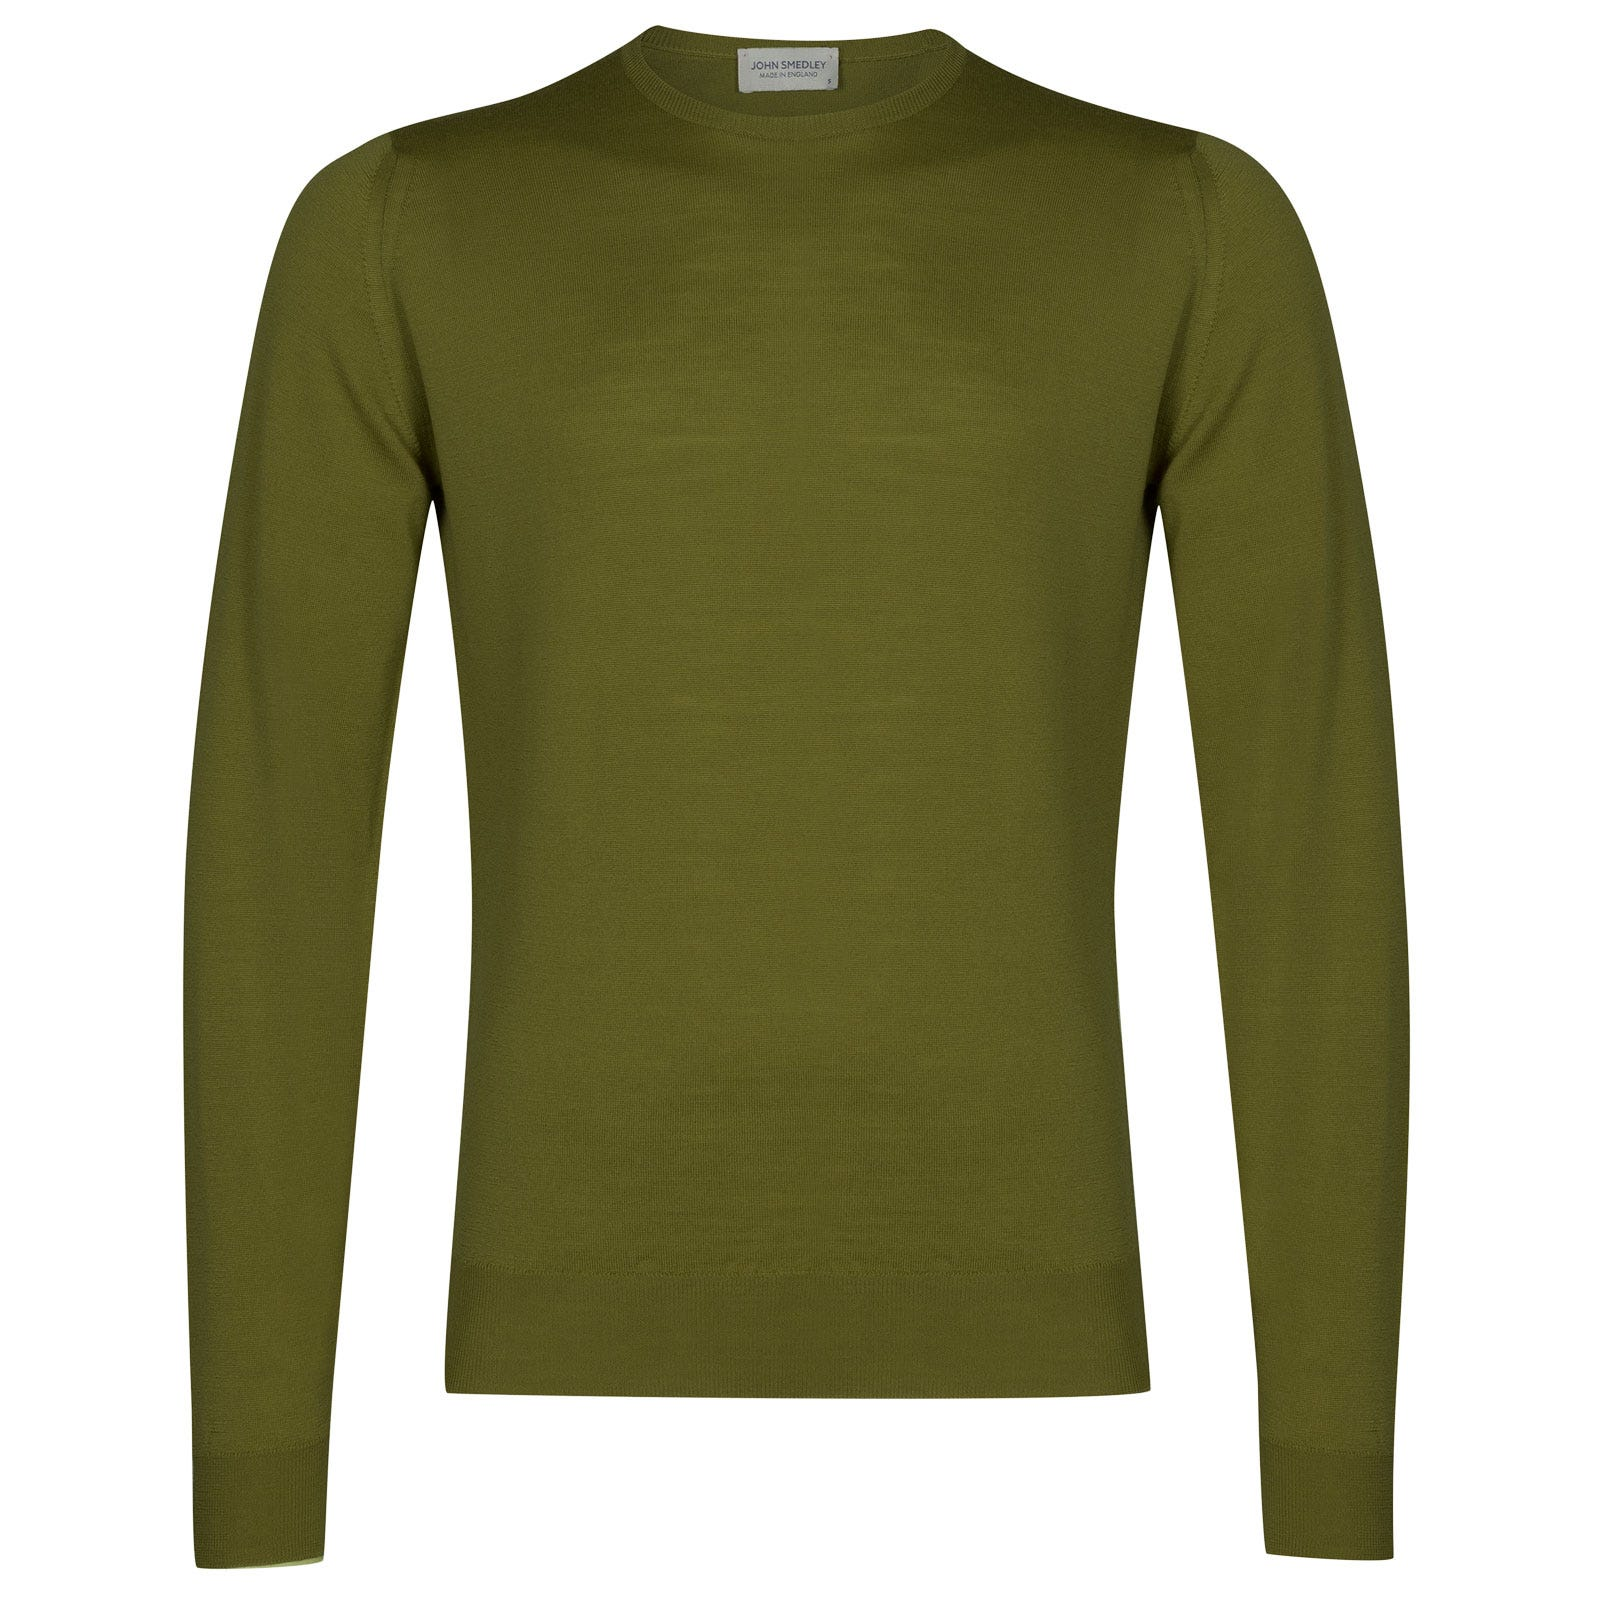 John Smedley lundy Merino Wool Pullover in Lumsdale Green-L